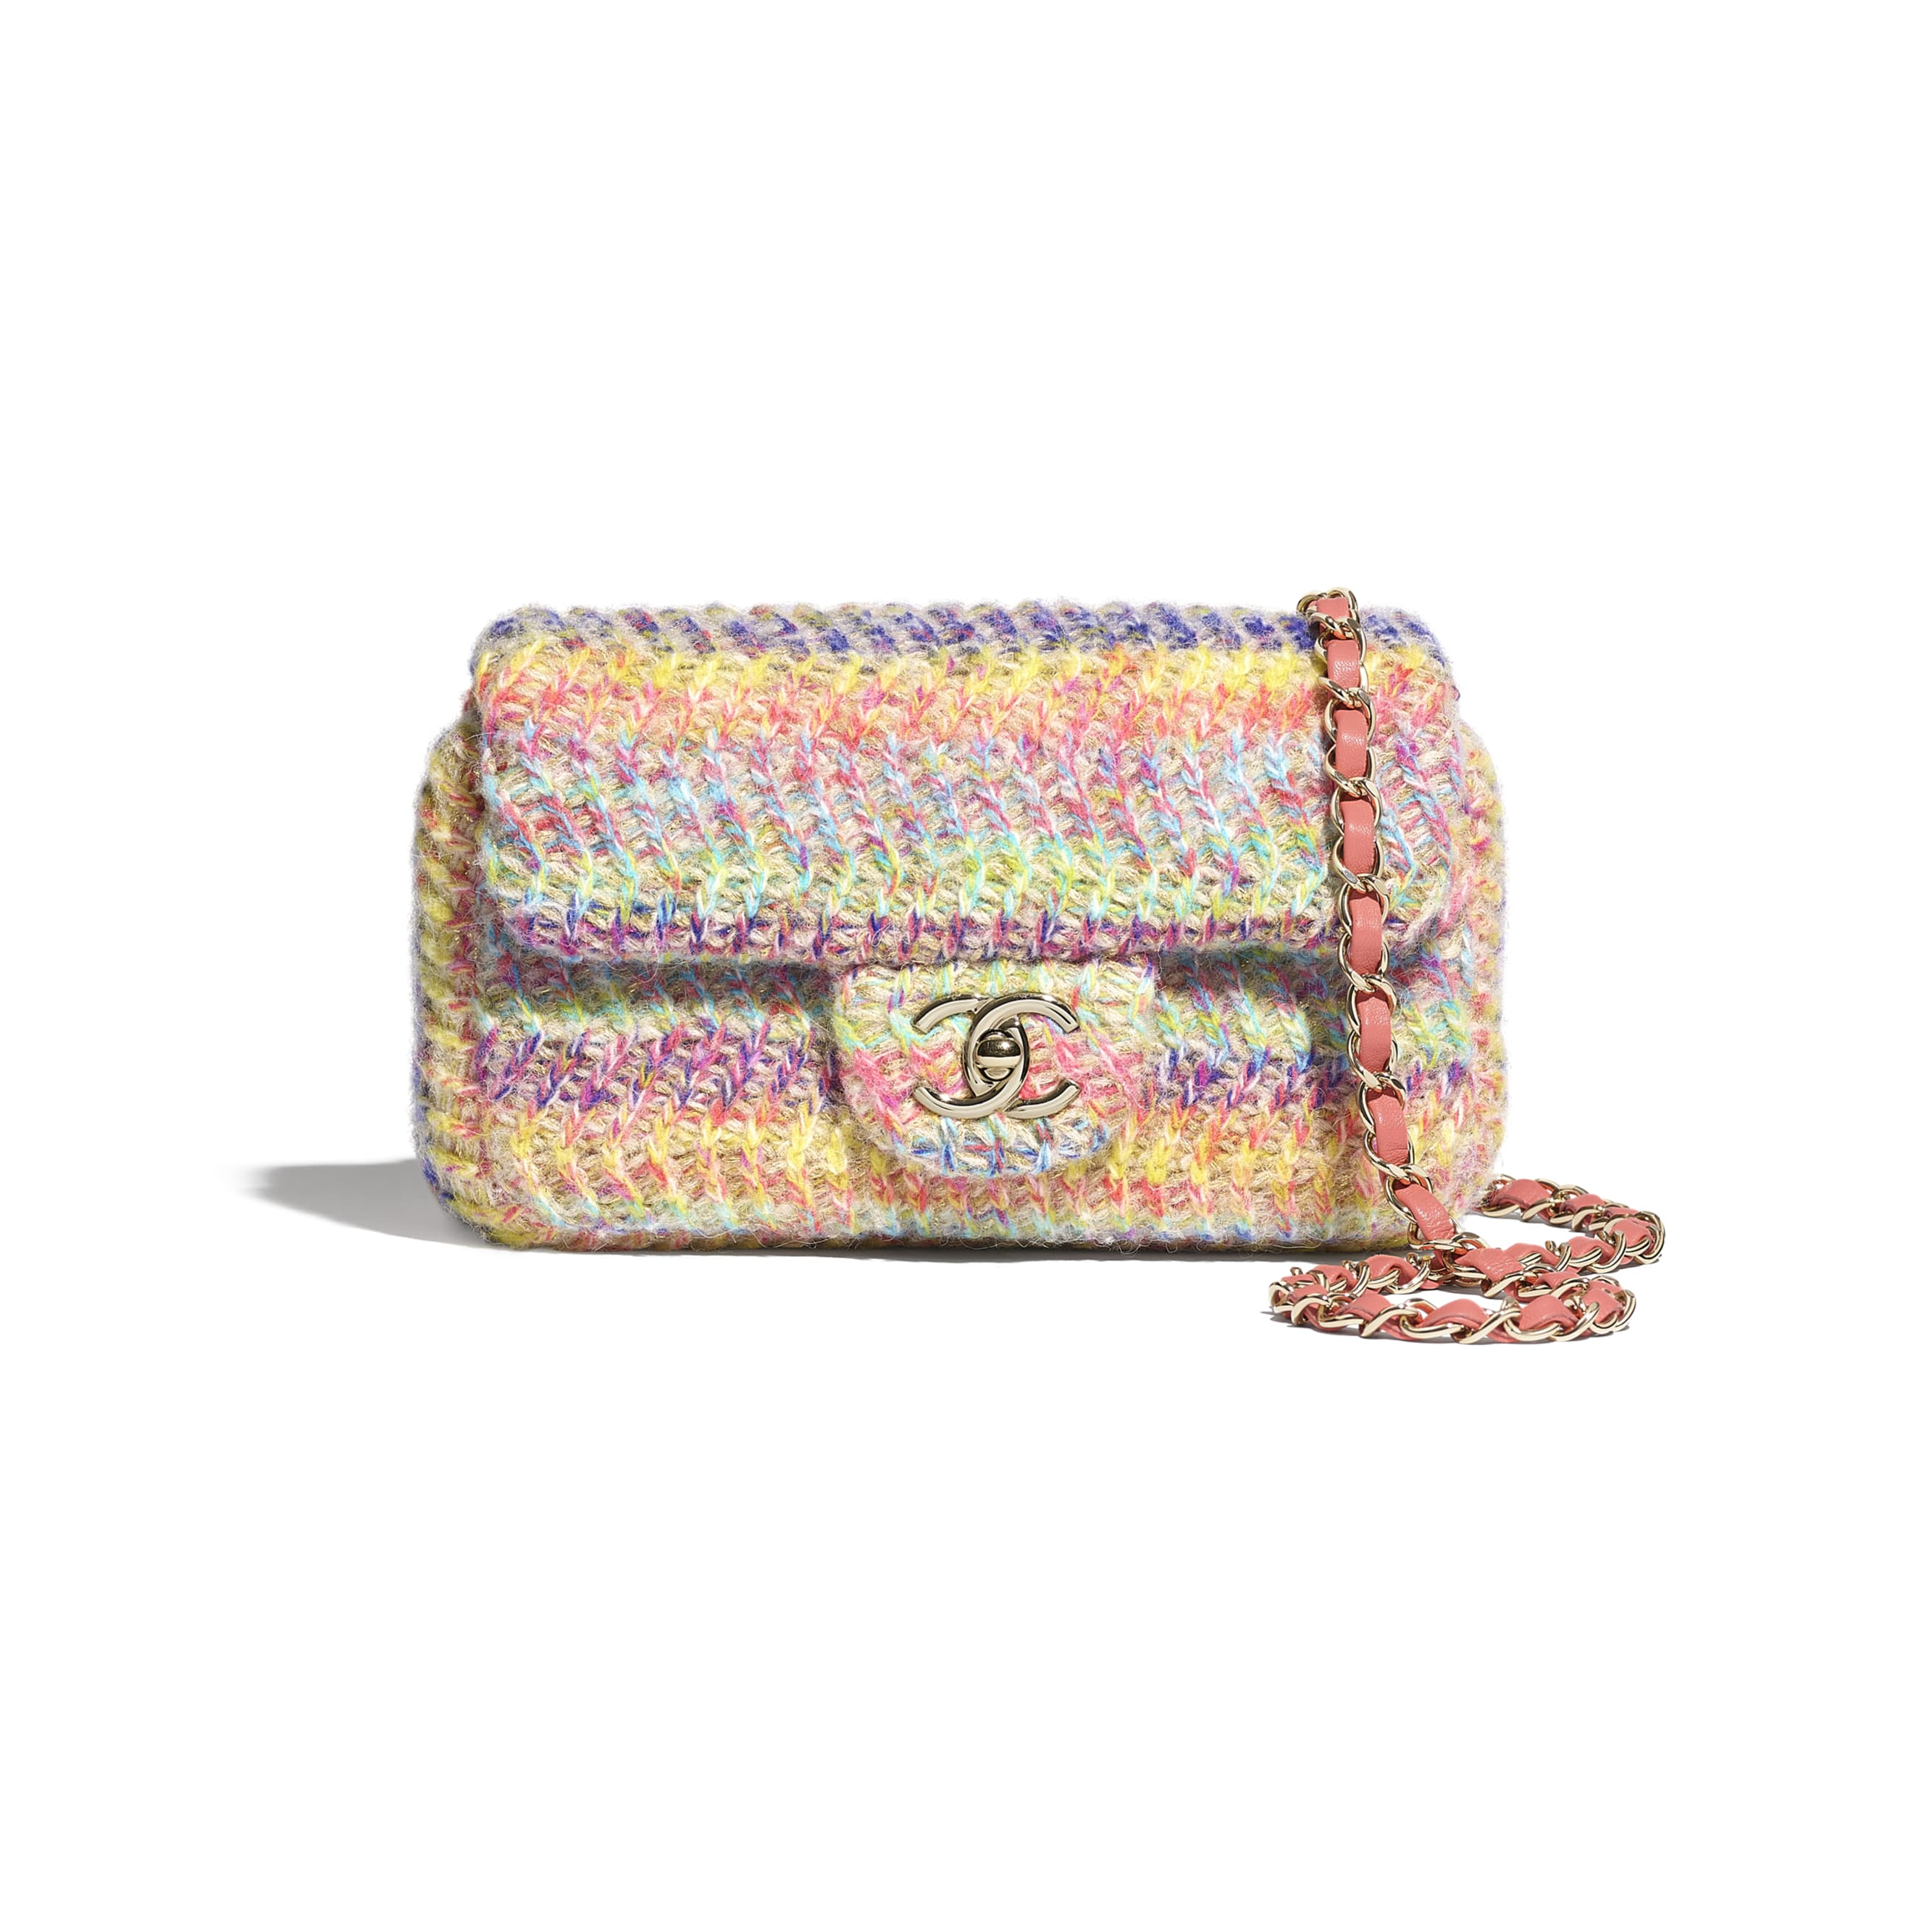 Small Flap Bag - Multicolour - Knit & Gold-Tone Metal - CHANEL - Default view - see standard sized version